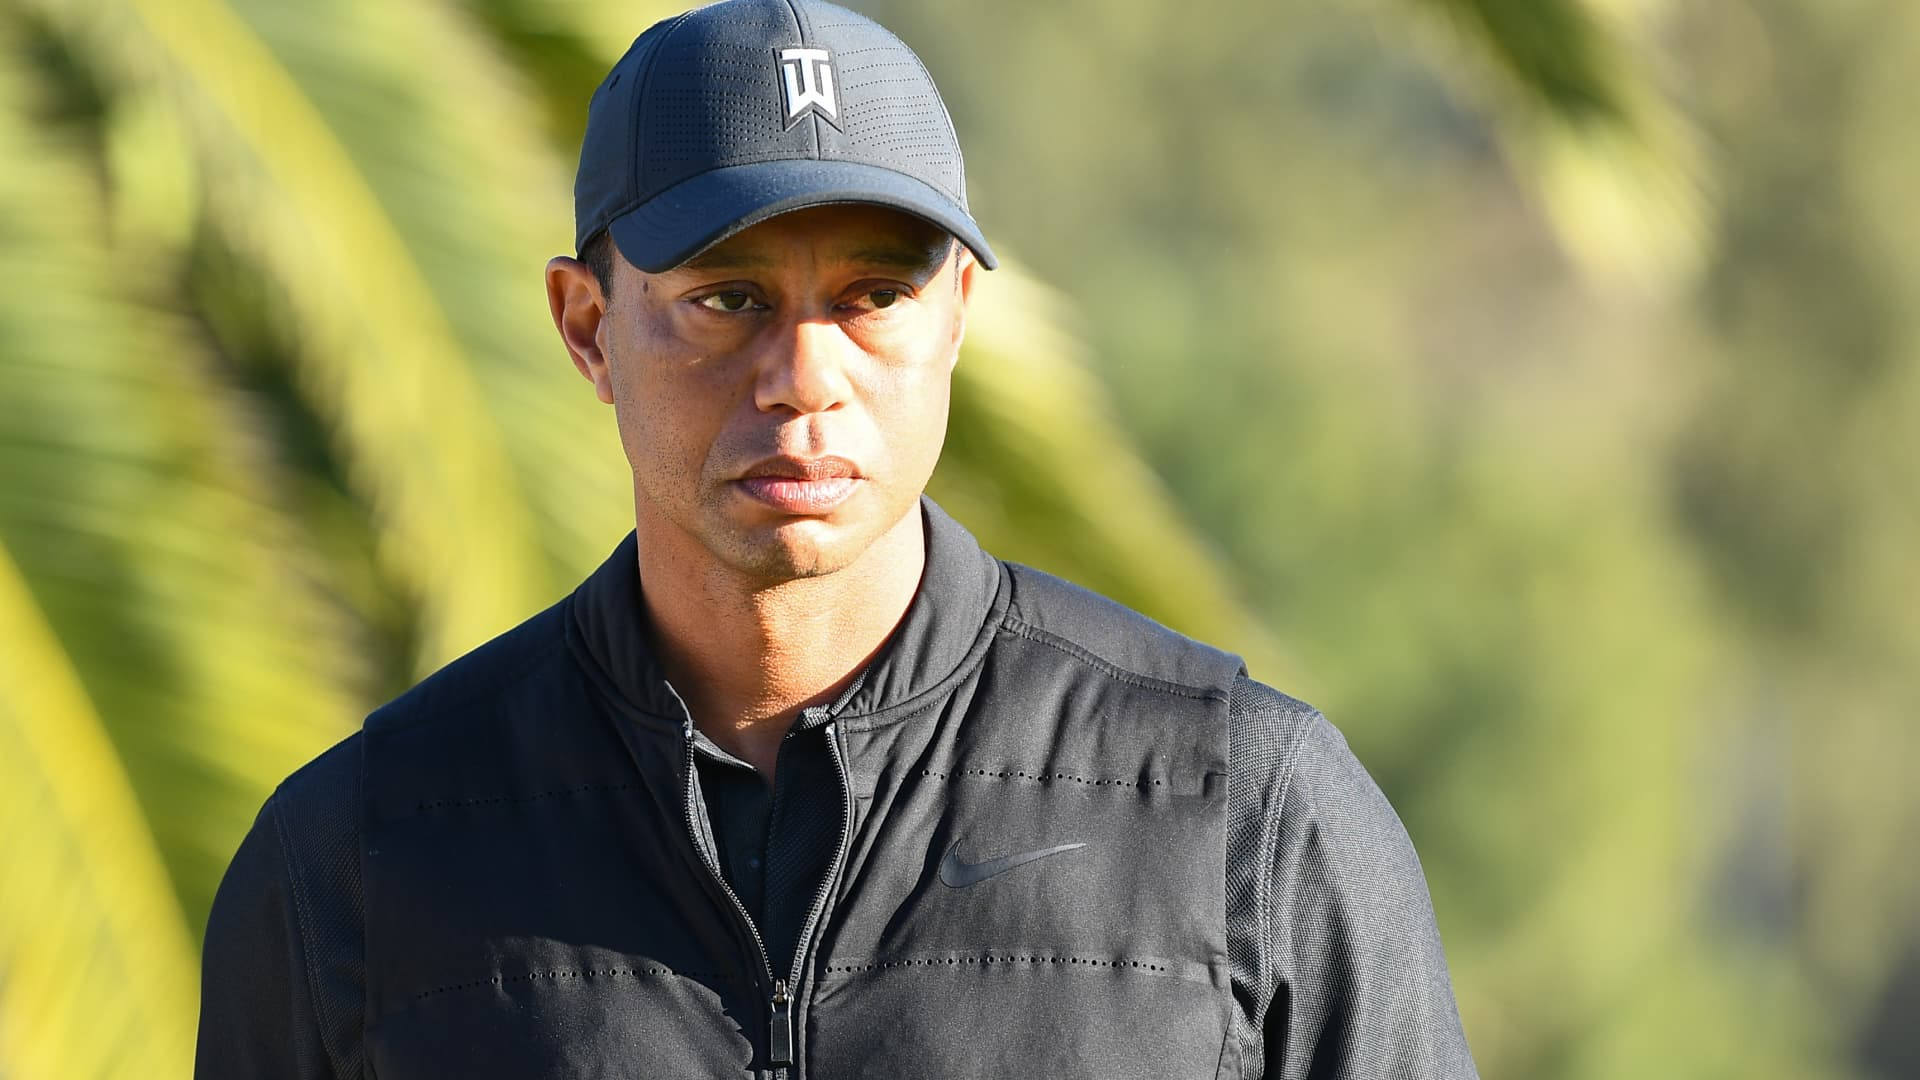 Tiger Woods looks on from the 18th hole during the final round of The Genesis Invitational golf tournament at the Riviera Country Club in Pacific Palisades, CA on February 21, 2021.